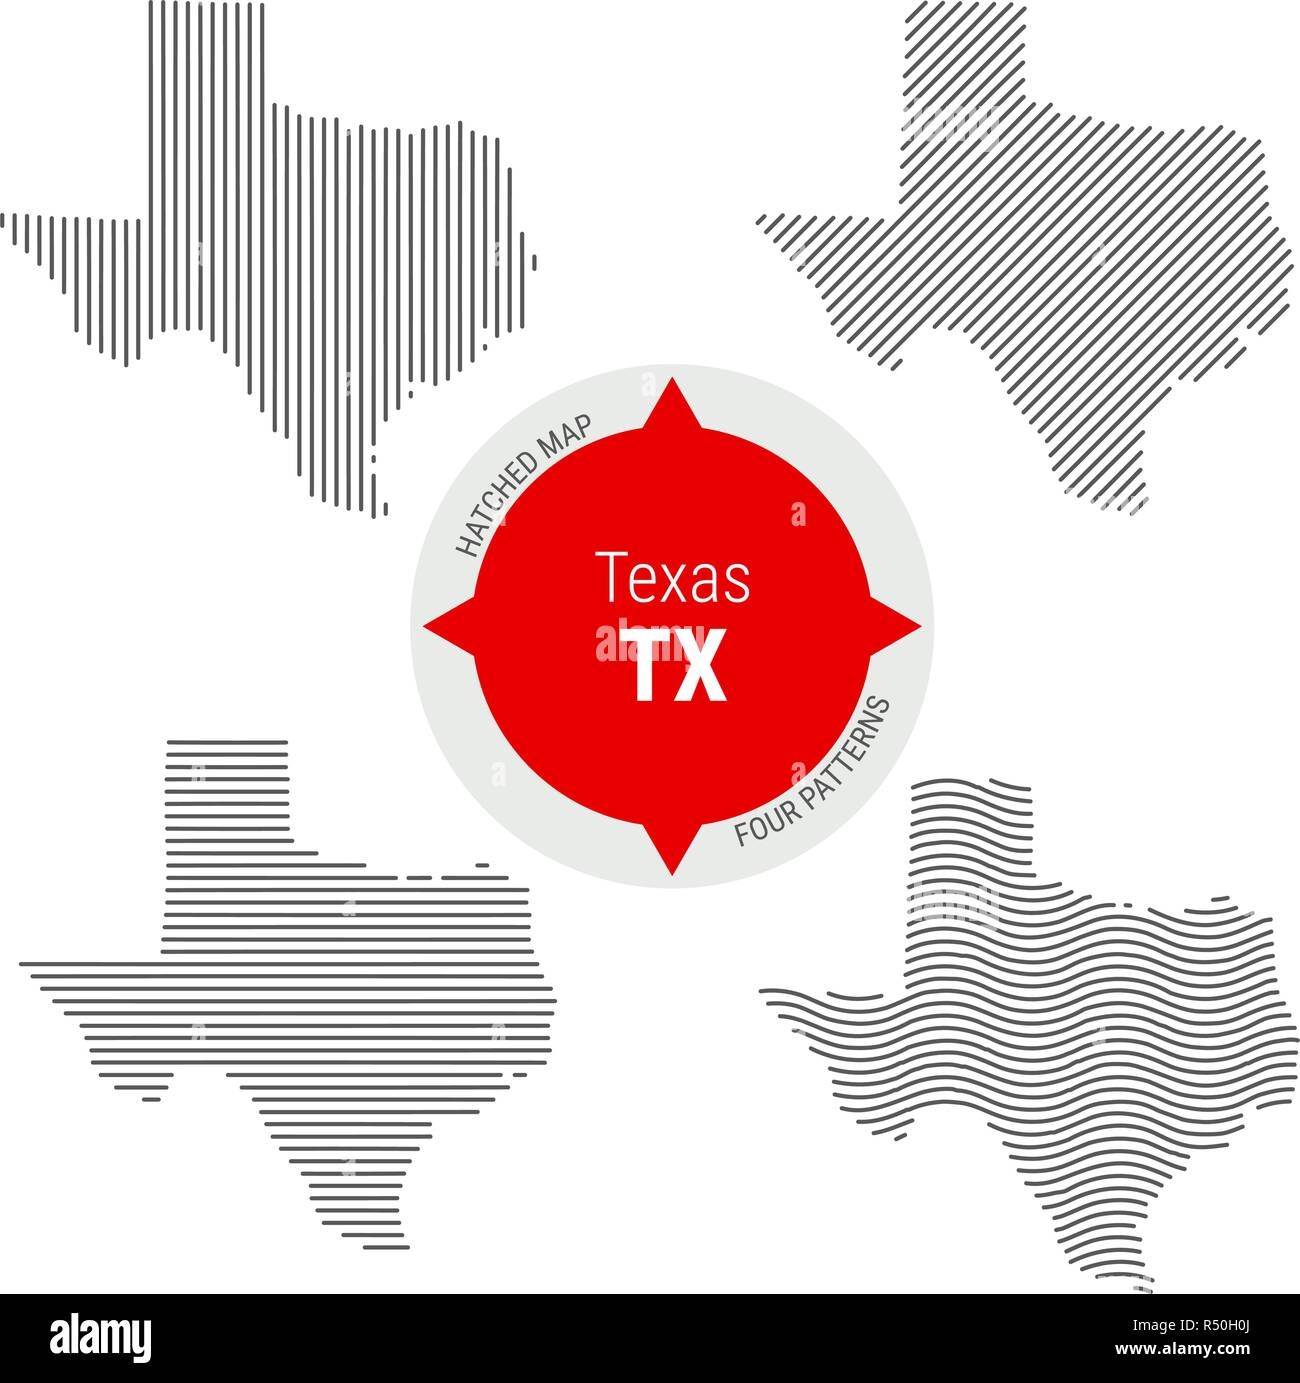 Hatched Pattern Vector Map Of Texas Stylized Simple Silhouette Of